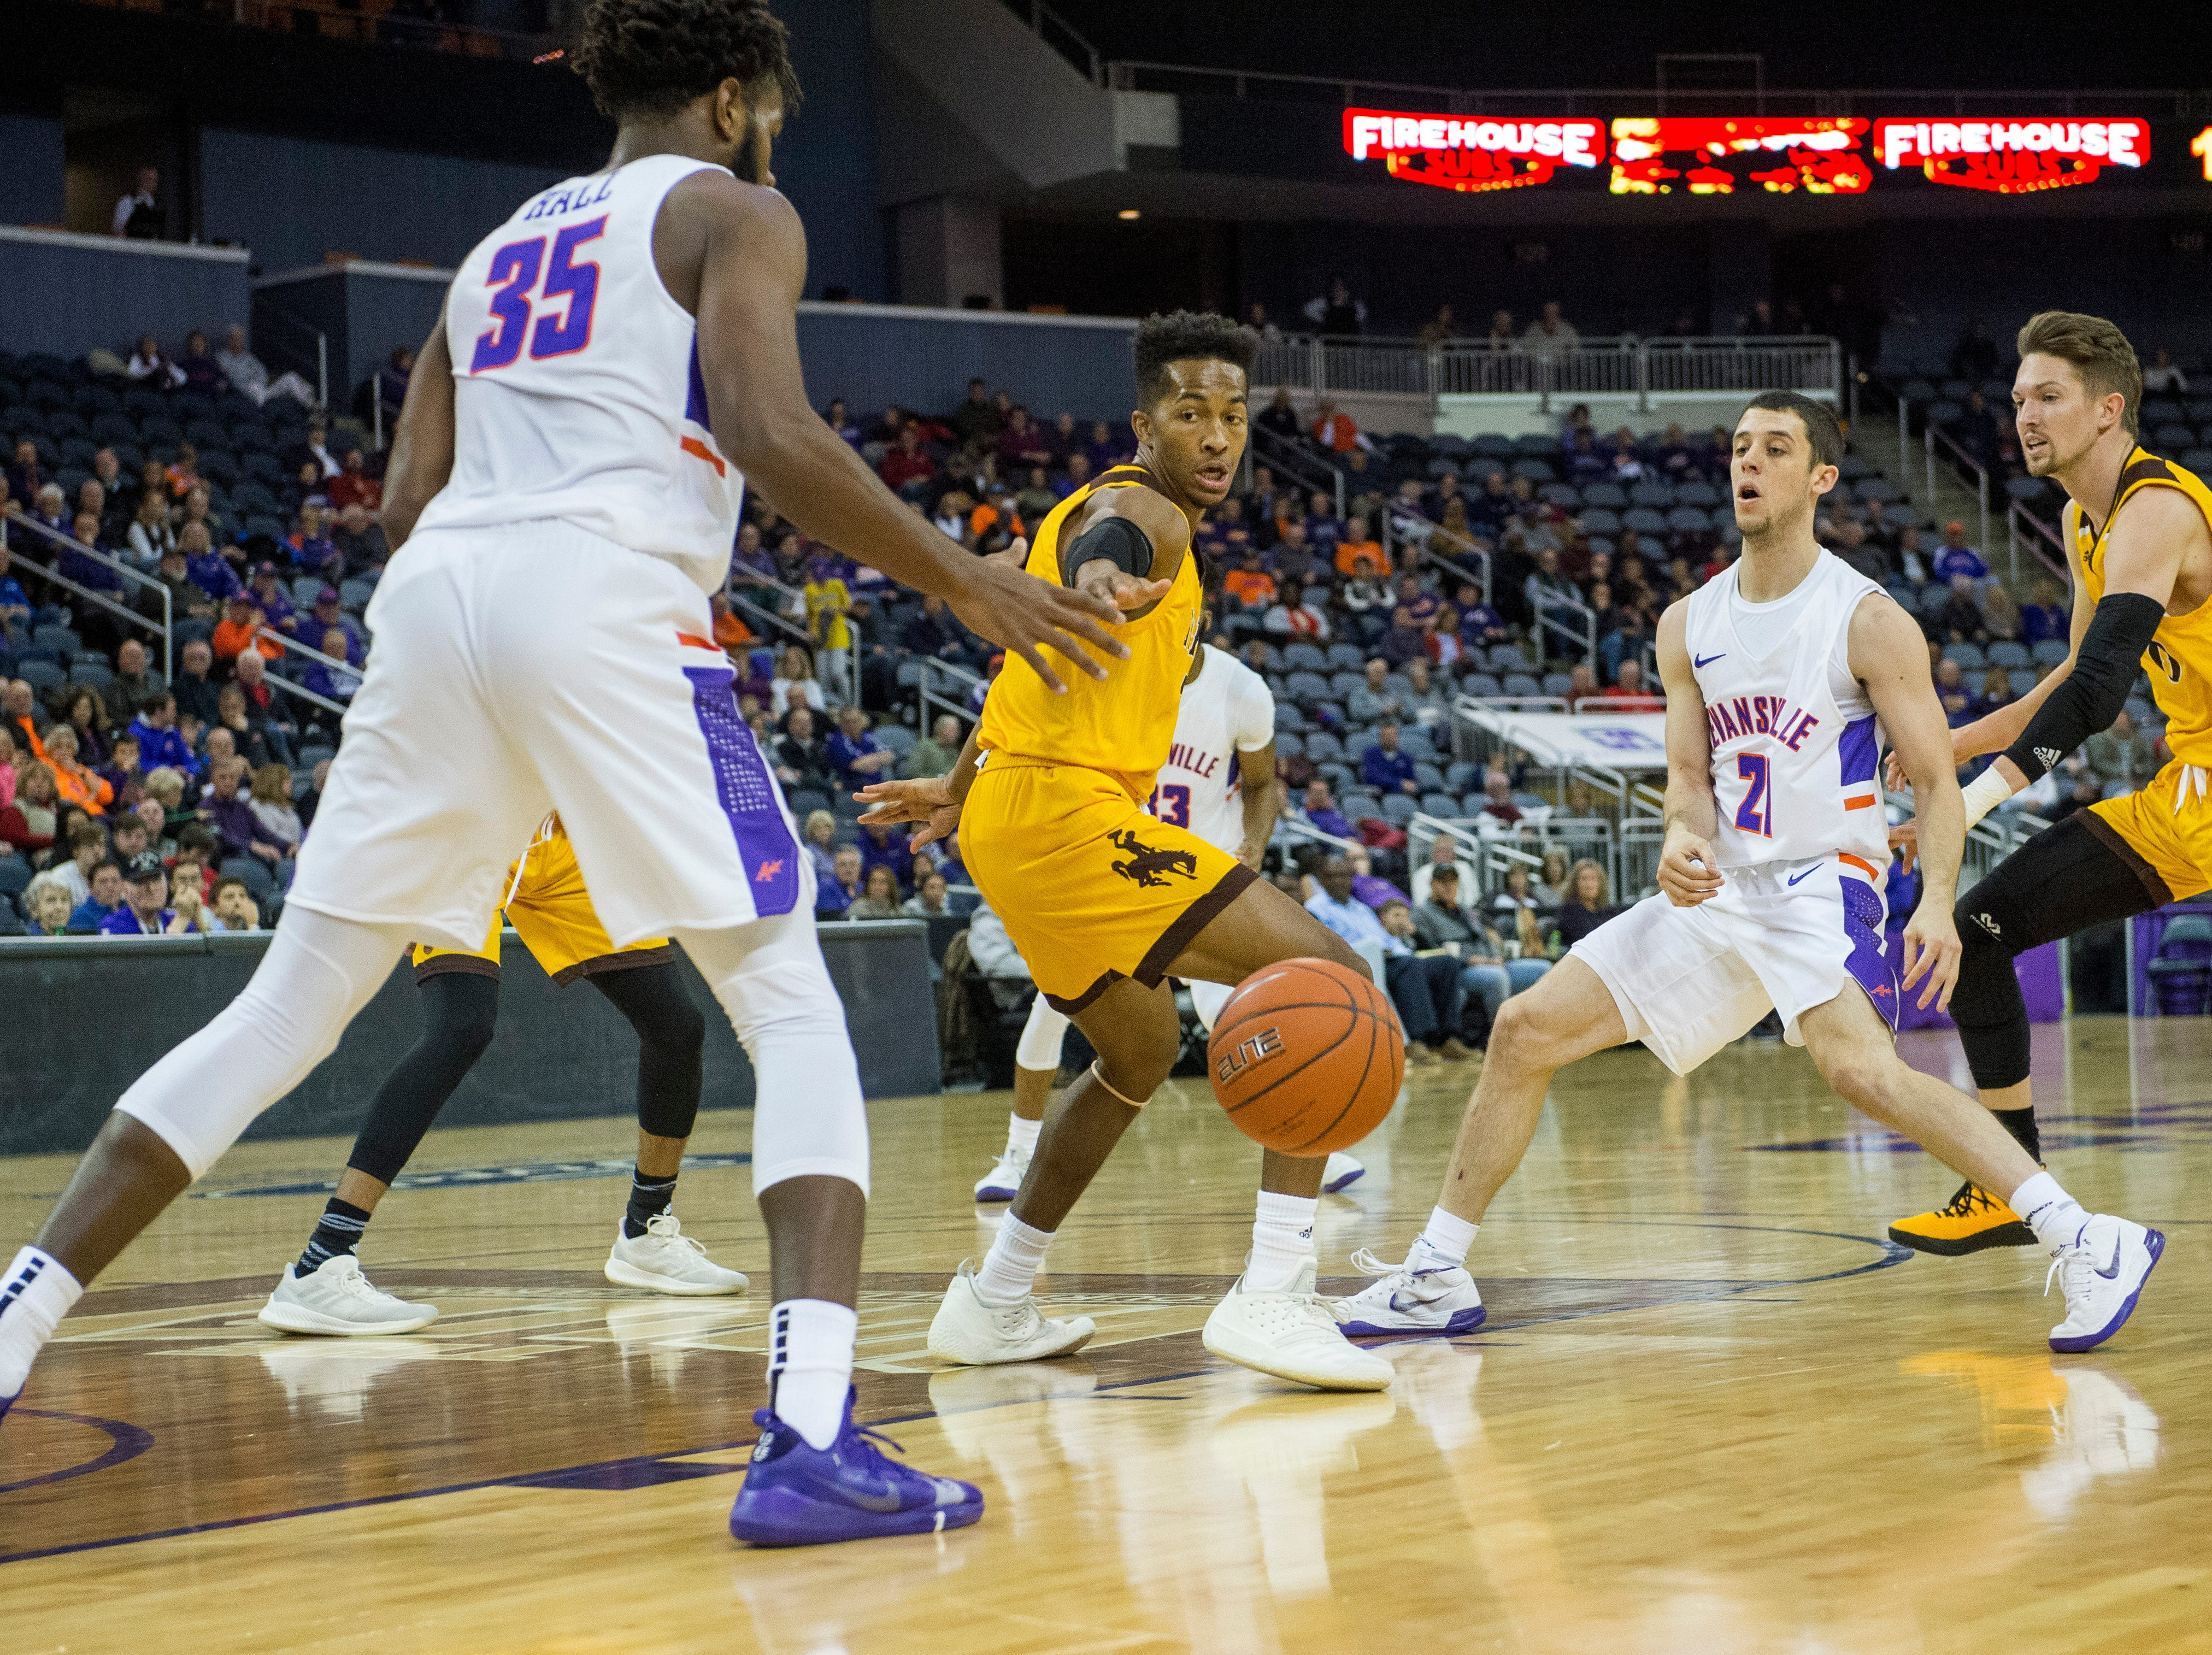 UE's Shea Feehan (21) passes the ball to UE's John Hall (35) during the UE vs Wyoming game at the Ford Center Wednesday, Nov. 28, 2018. UE won 86-76.